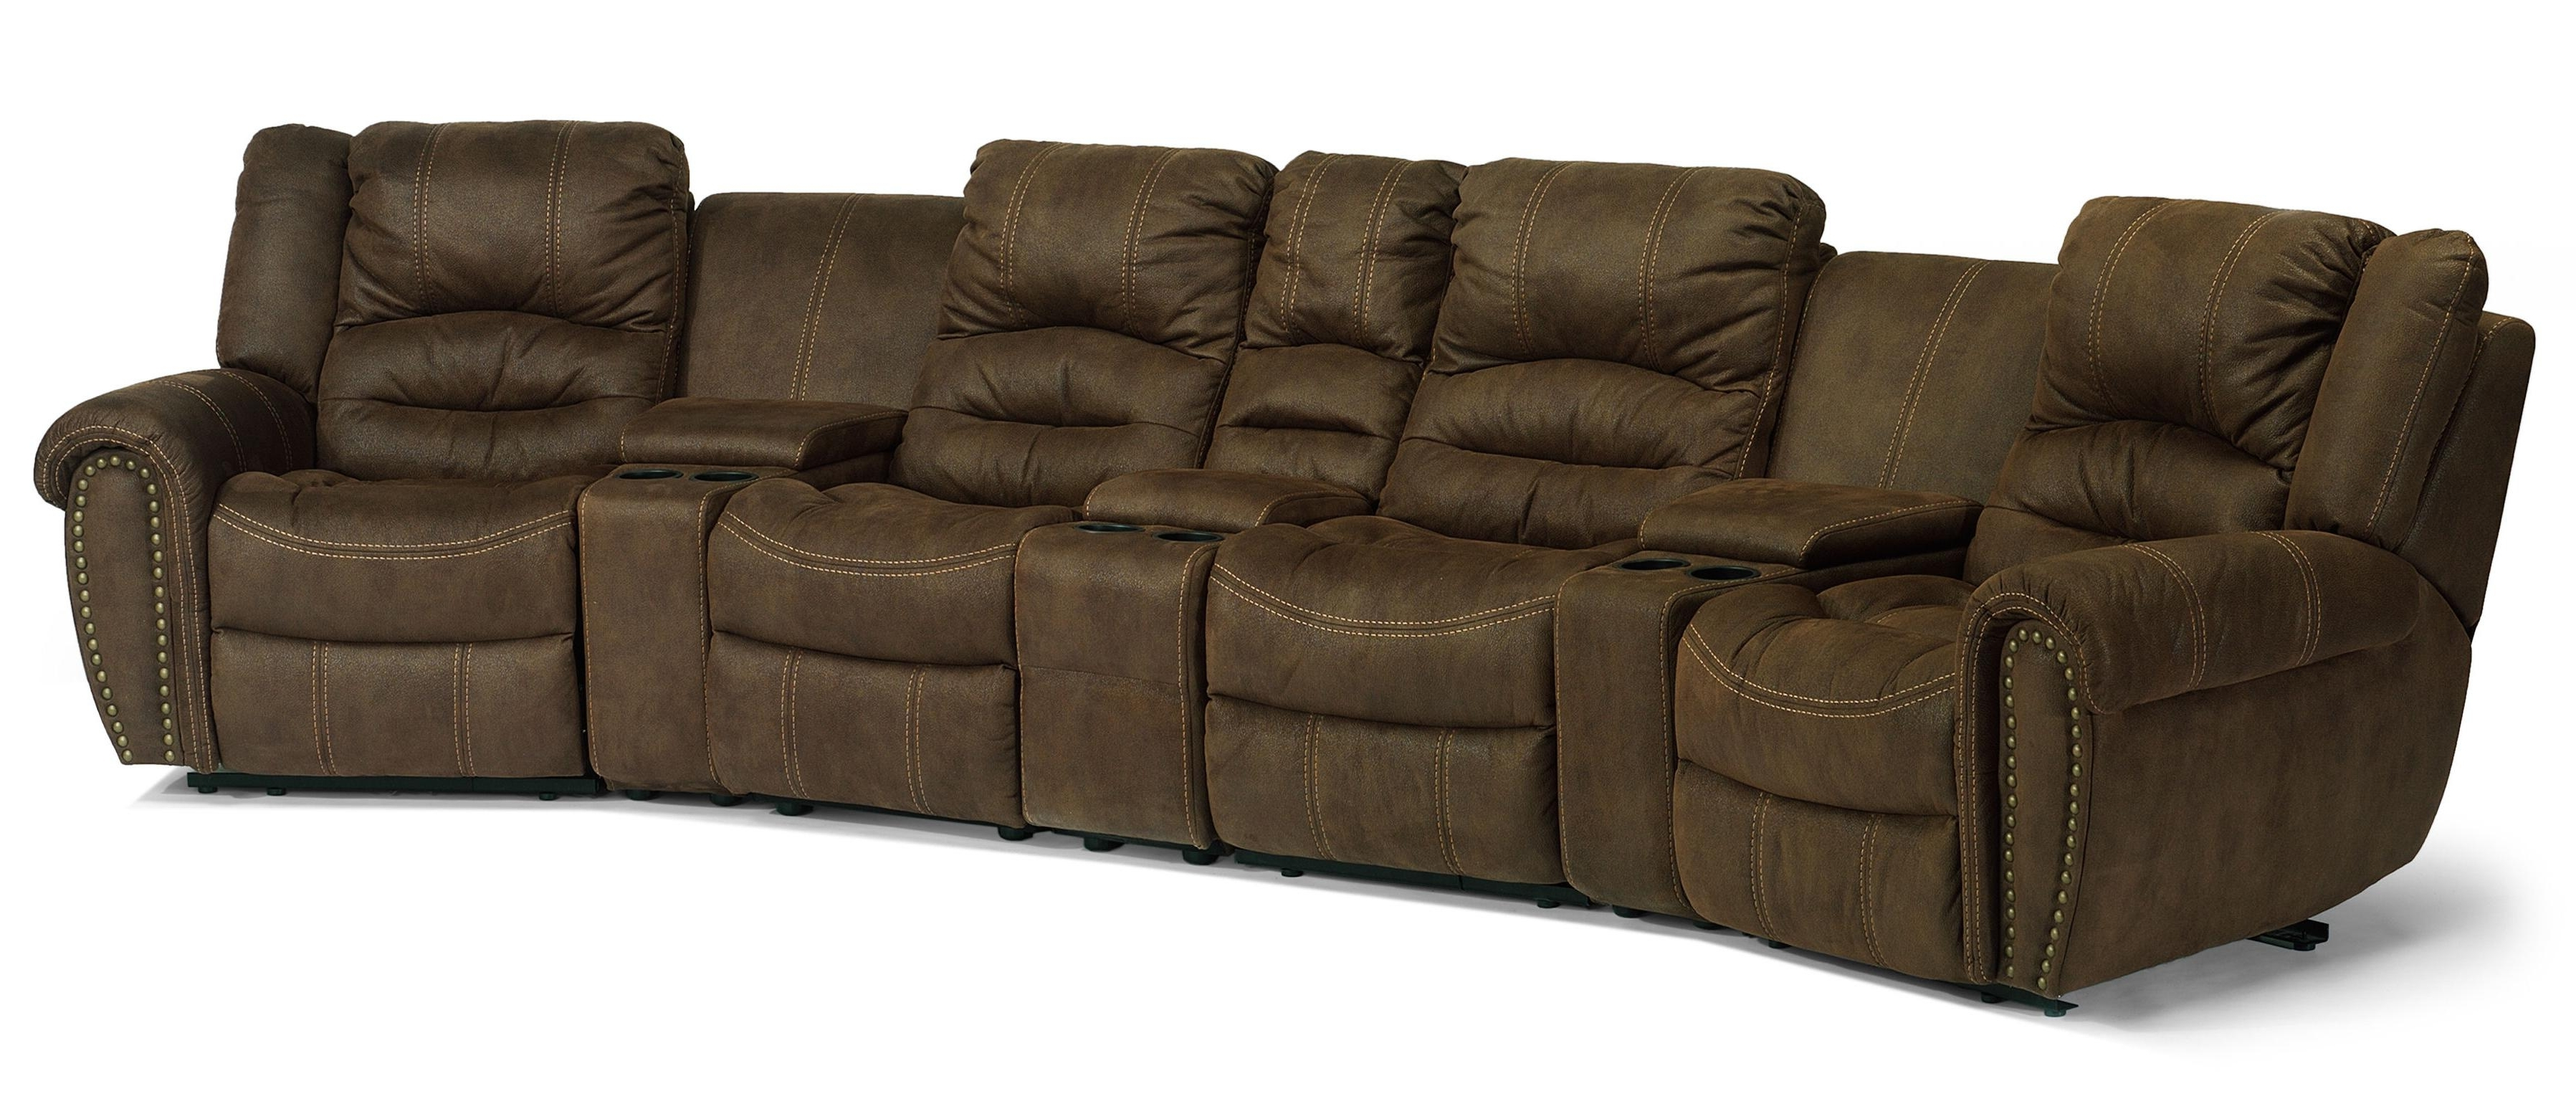 Fashionable Flexsteel Latitudes – New Town Curved Reclining Sectional Sofa With Regard To Kansas City Sectional Sofas (View 4 of 20)